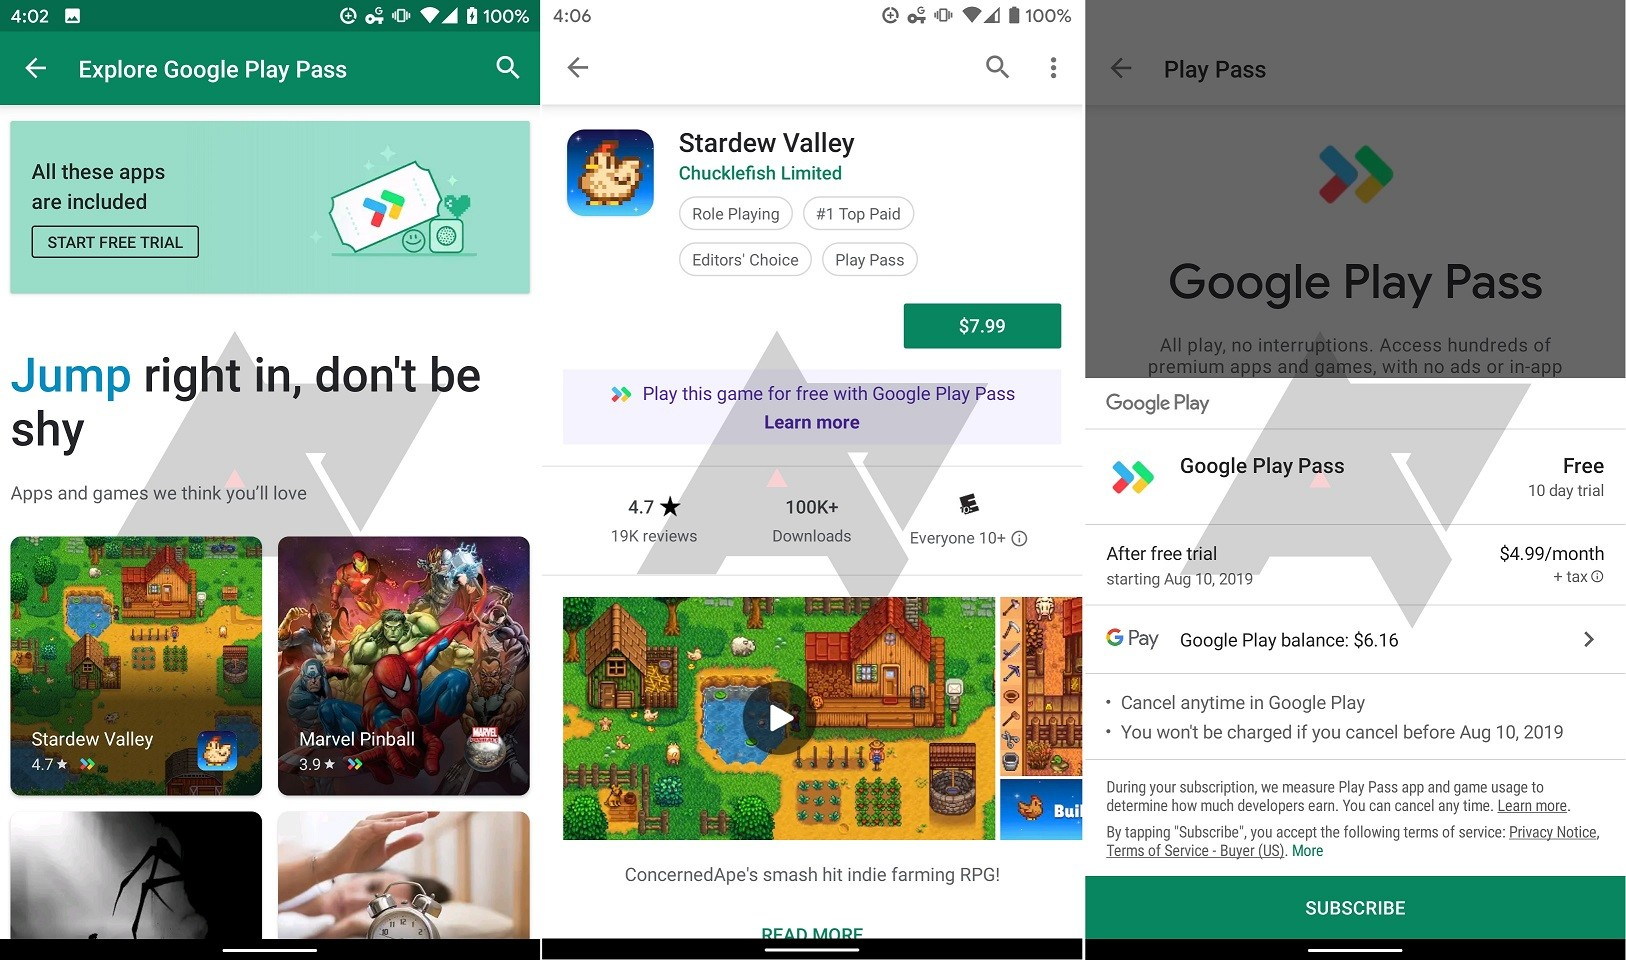 Google has been testing Play Pass subscription service behind the